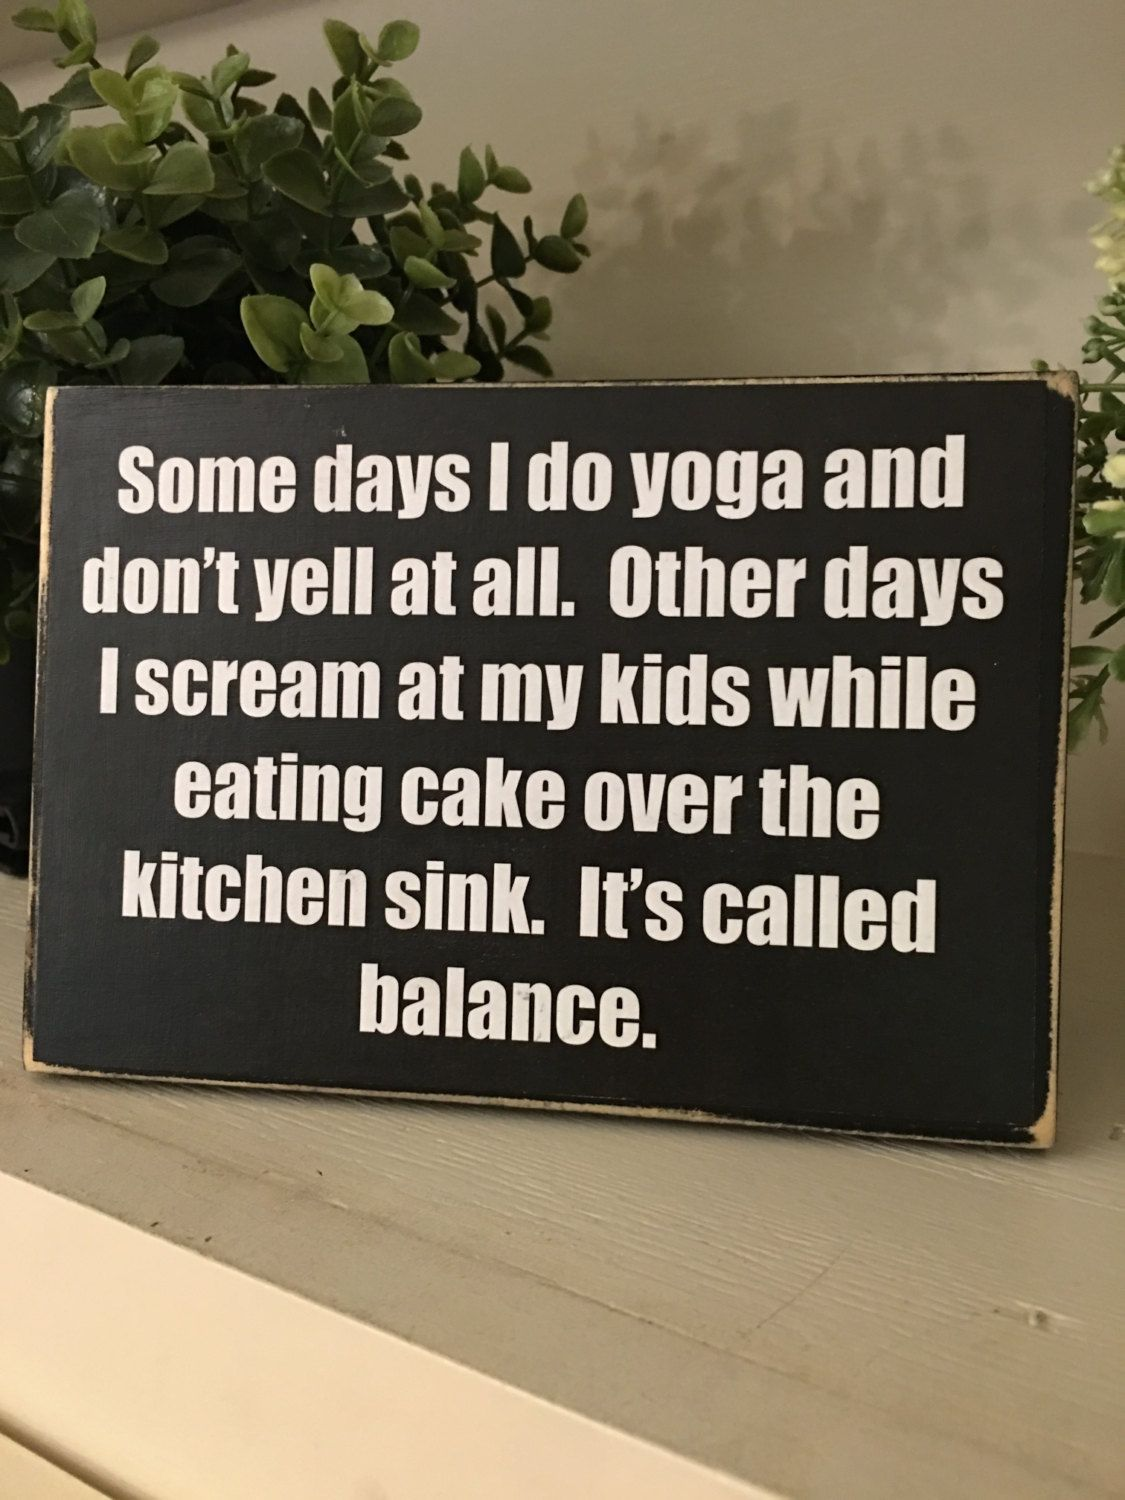 Mom Yoga Gifts For Yoga Mom Home Decor Yoga Funny Yoga Gift From Husband For Wife Primitive Shelf Sitter For Mom Funny Mom Quotes Signs Yoga Funny Mom Quotes Mom Humor Mom Quotes